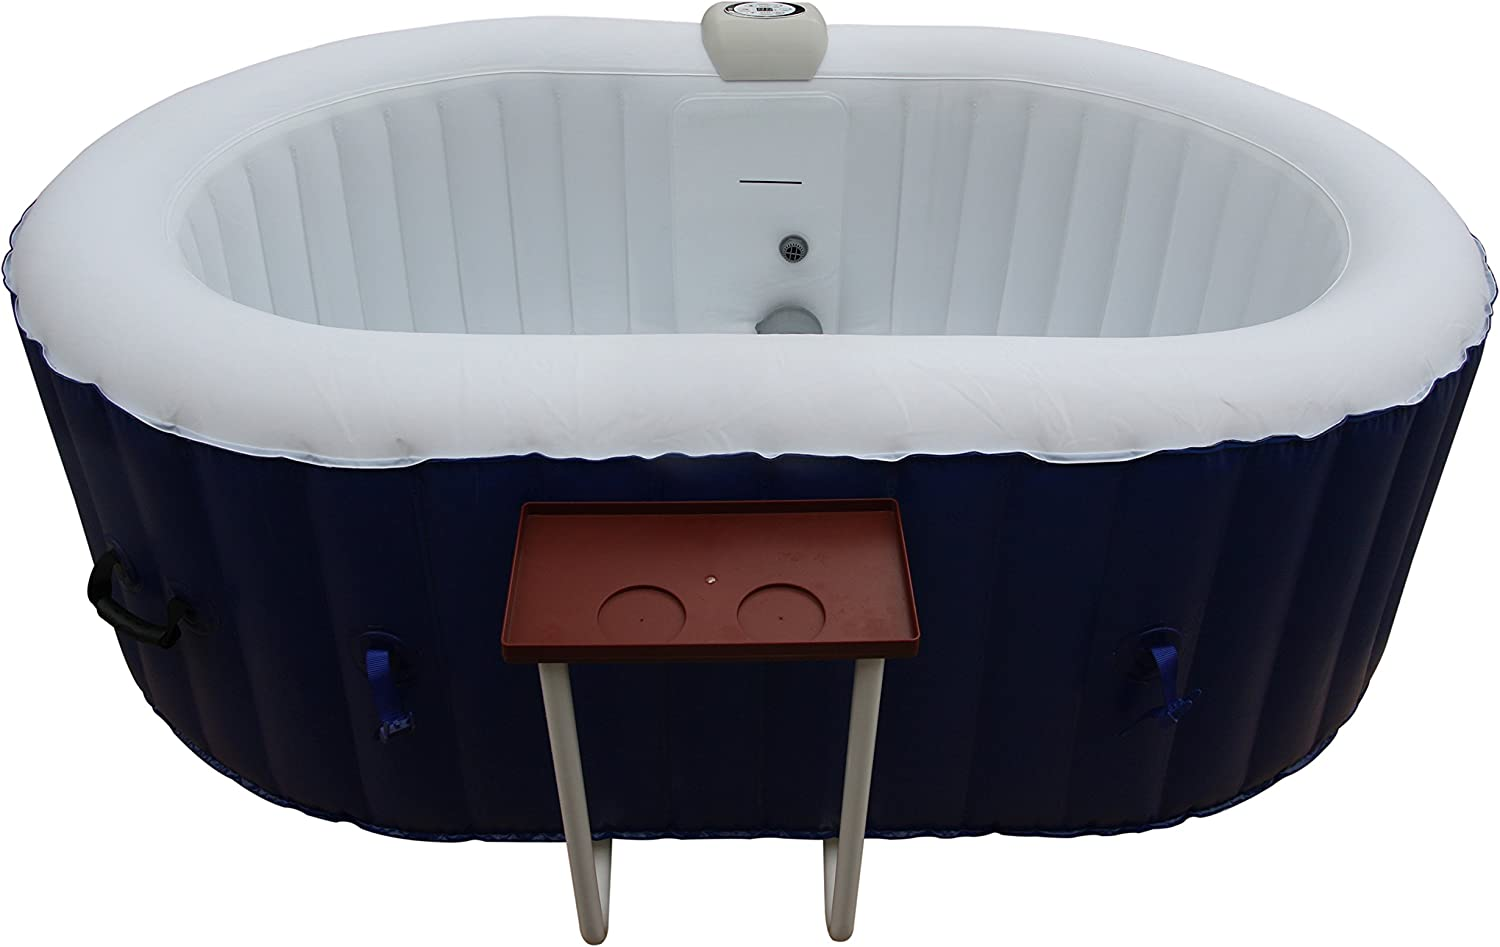 ALEKO HTIO2BLD Oval Inflatable Hot Tub Spa with Drink Tray and Cover, 2 Person Portable Hot Tub - 145 Gallon Dark Blue